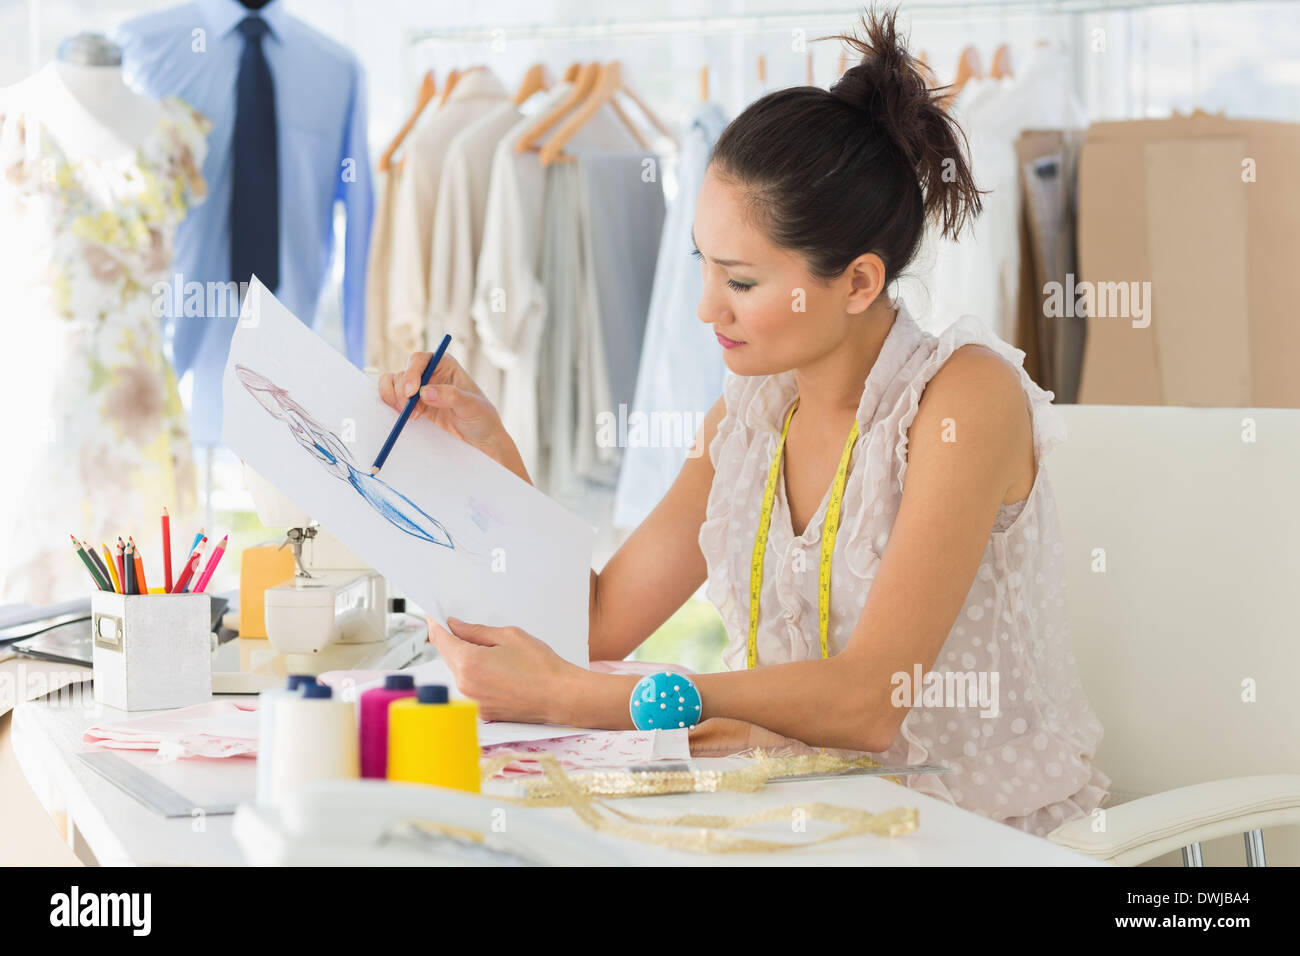 Female fashion designer working on her designs - Stock Image